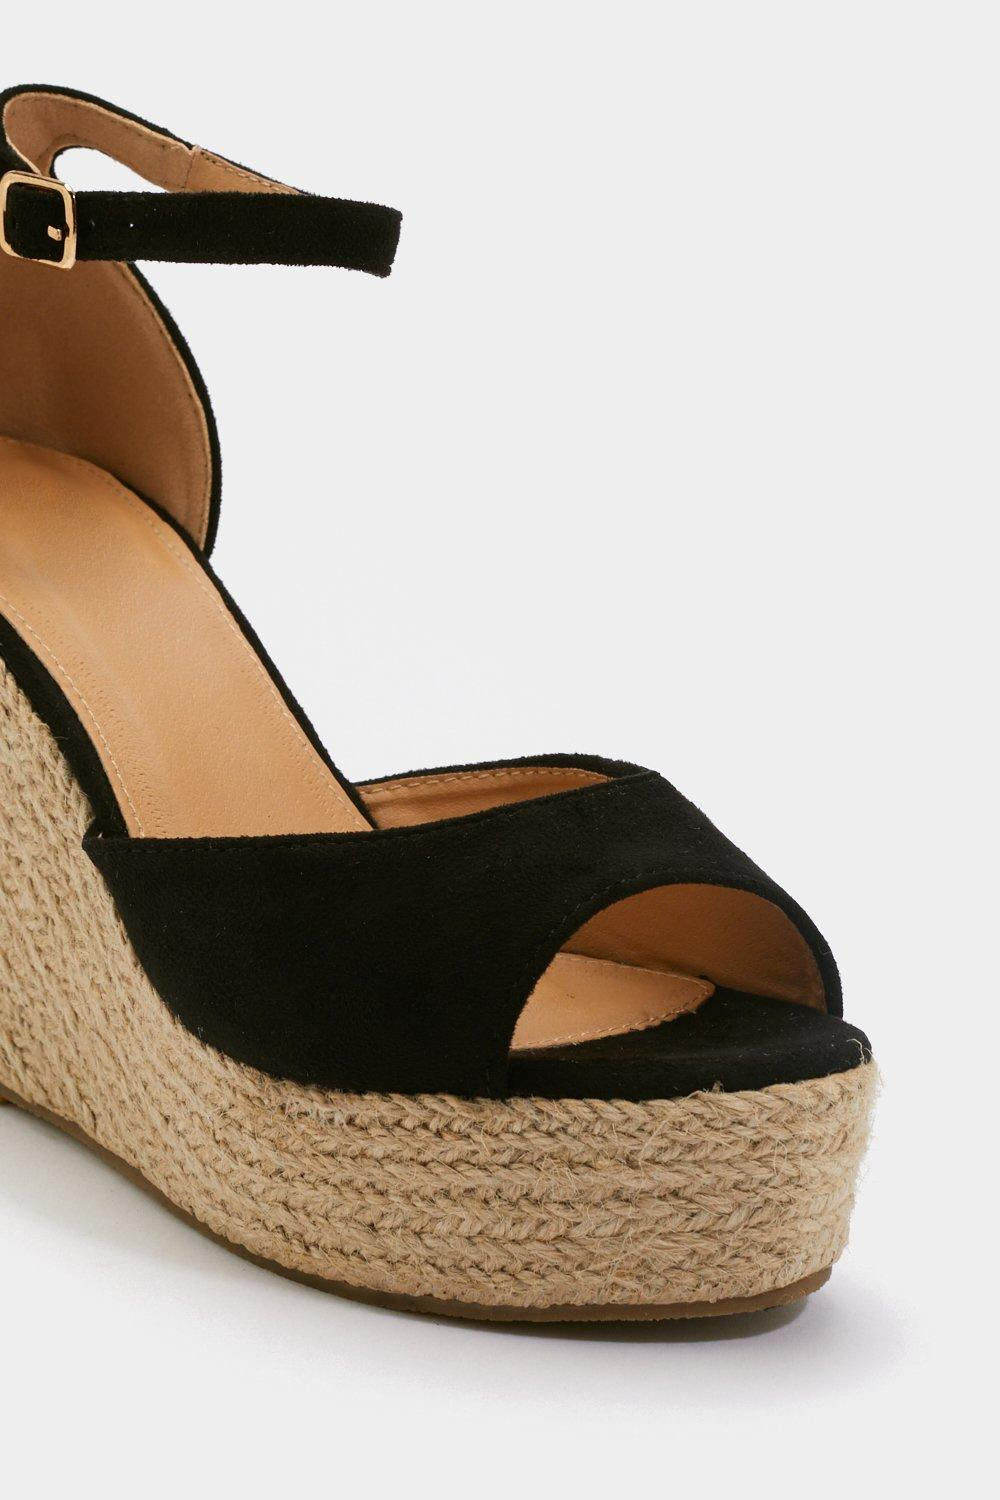 7c2326c39126 Sunny Afternoon Faux Suede Woven Wedges